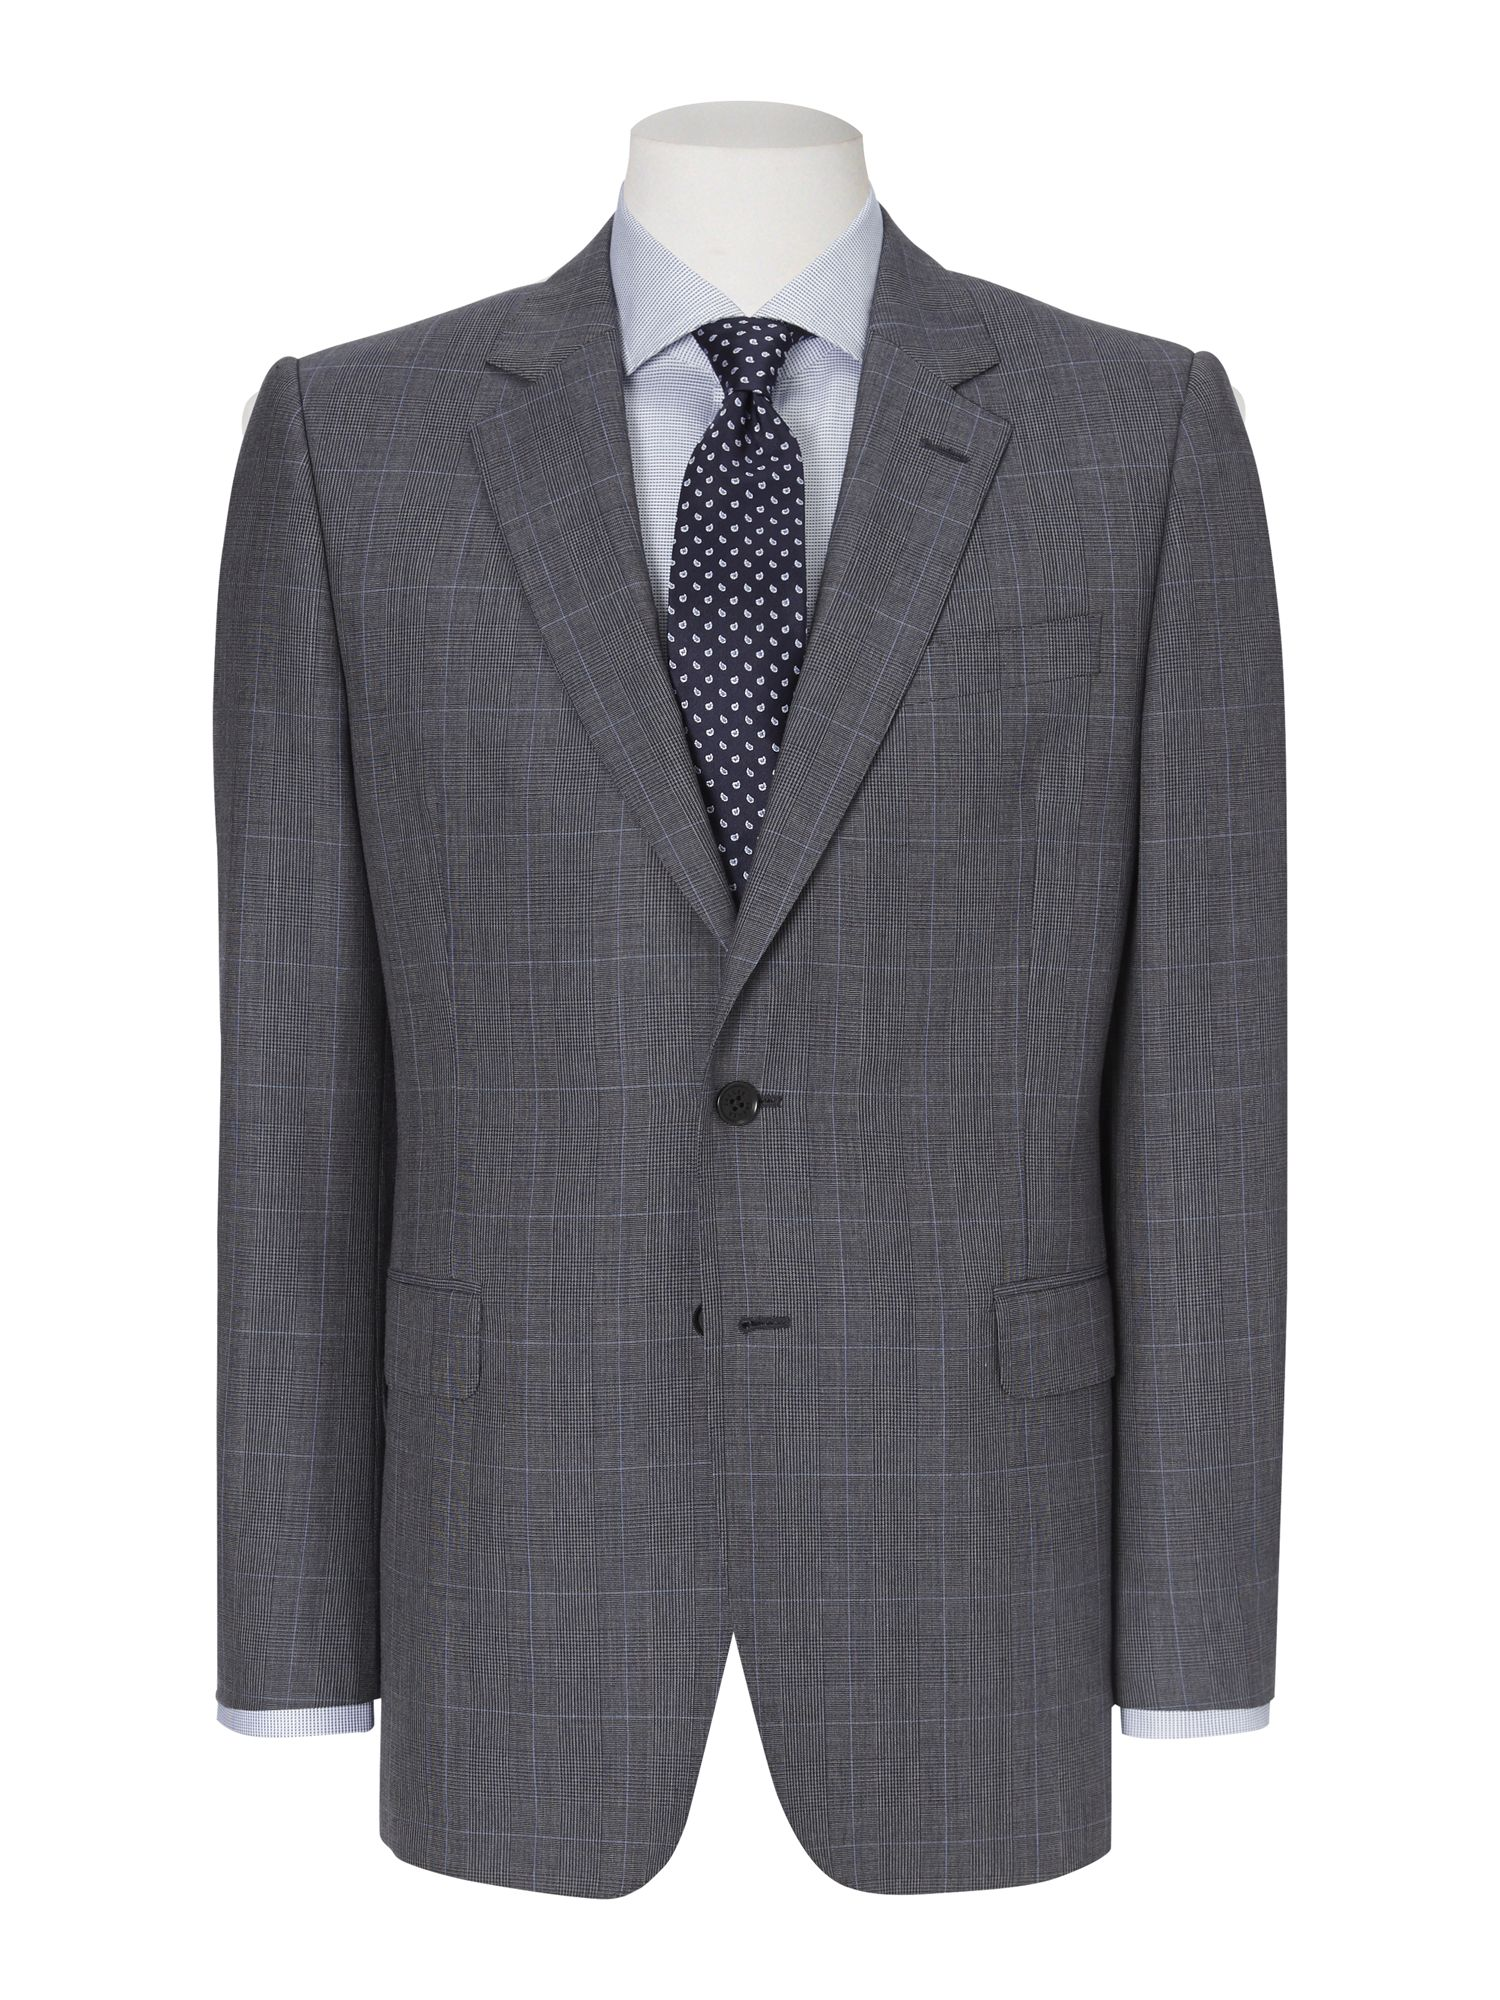 Prince of Wales check single breasted suit jacket